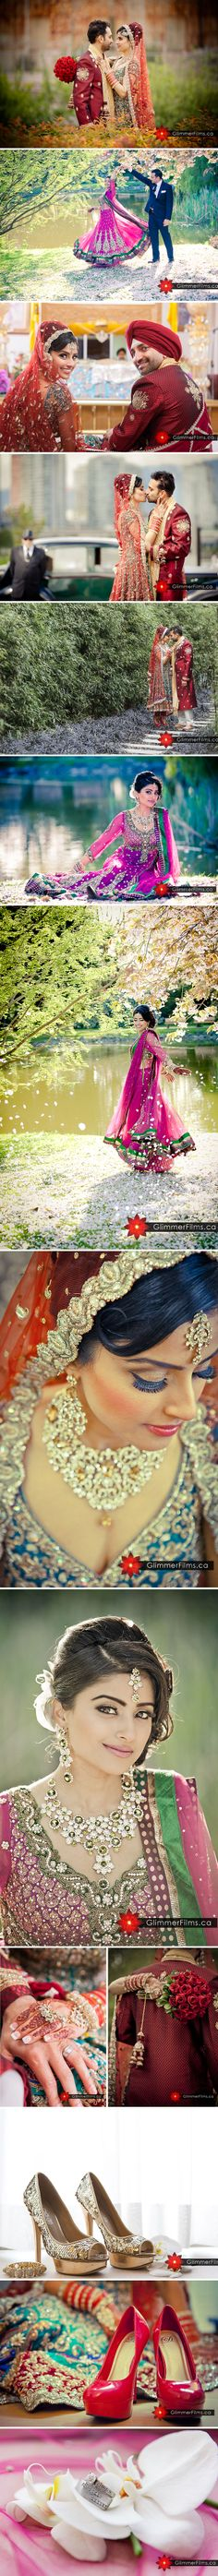 Indian wedding photography. photo shoot ideas. - #Filmwalawedding